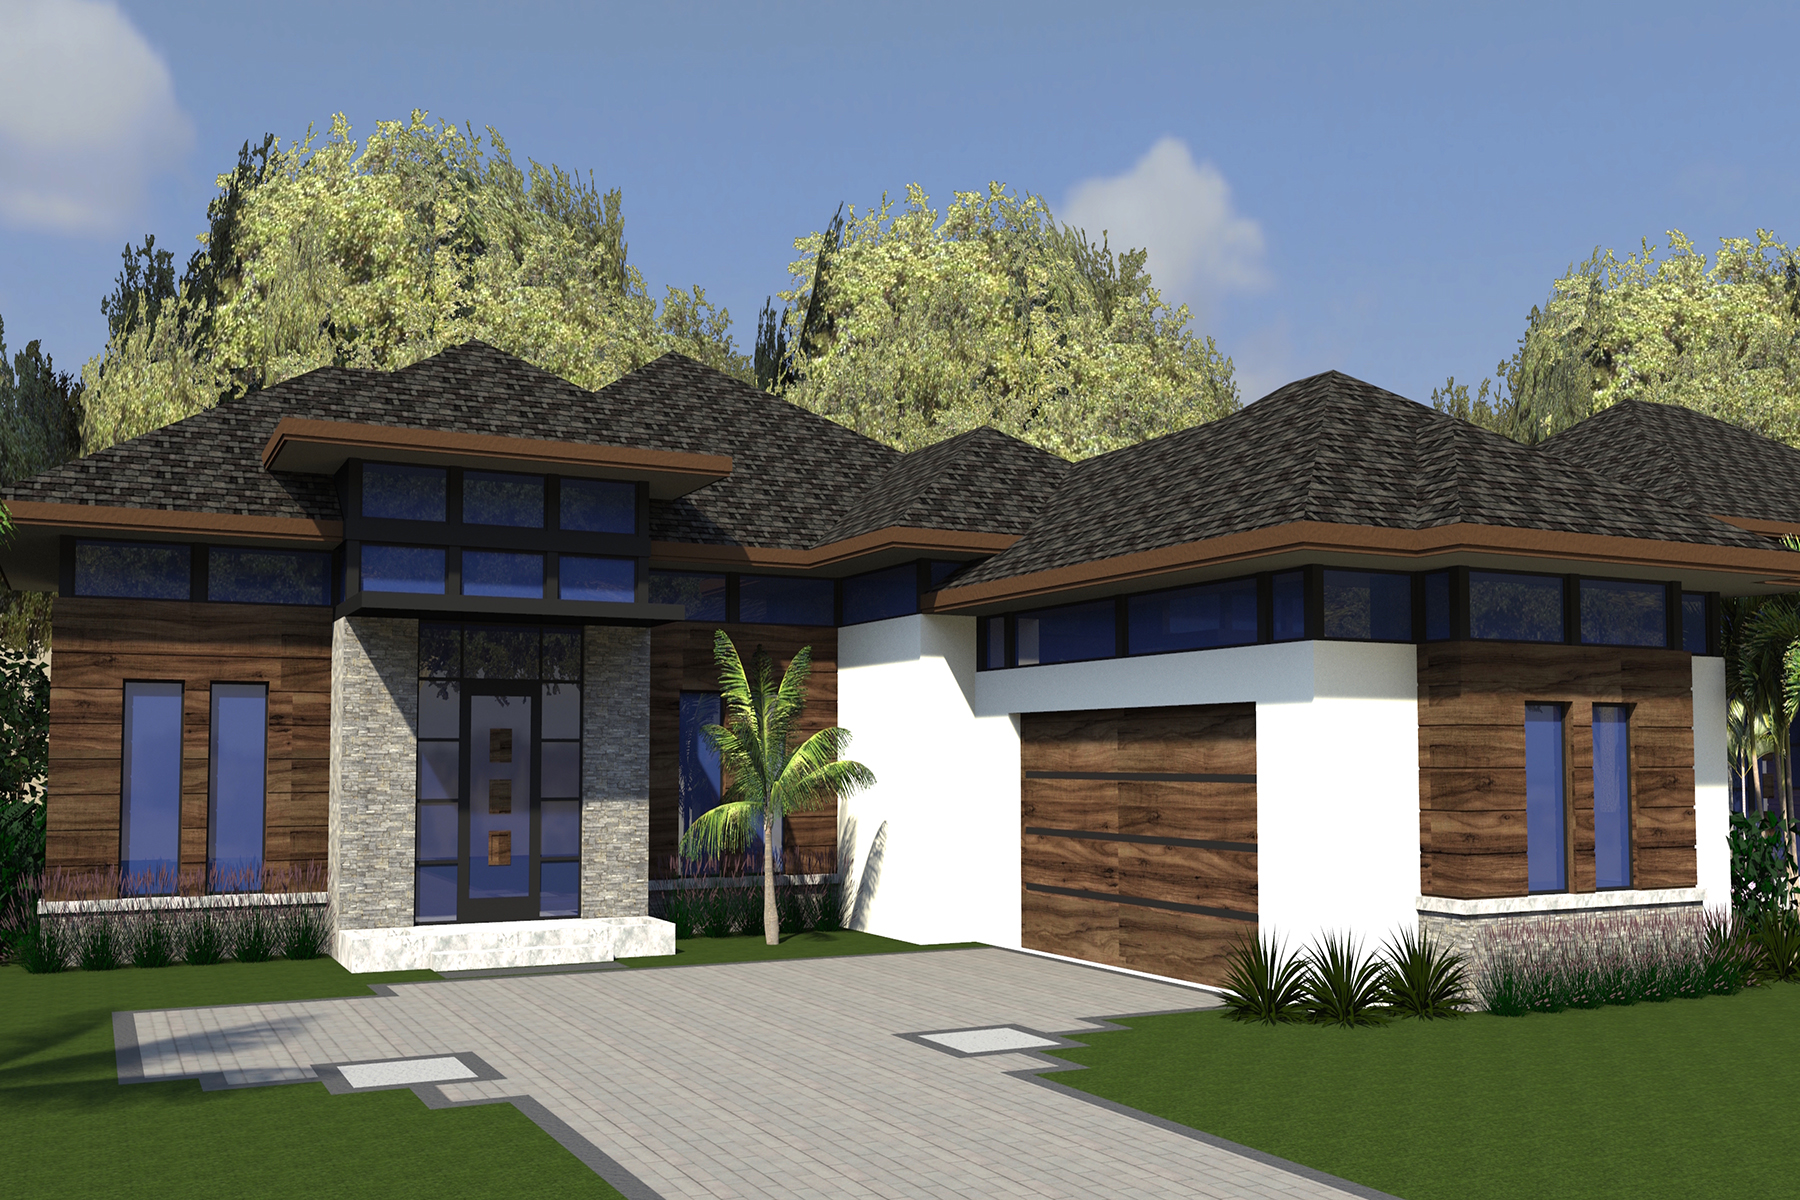 Casa Unifamiliar por un Venta en LEGACY ESTATES 598 Lakeland Ave Lot 12 Naples, Florida, 34110 Estados Unidos